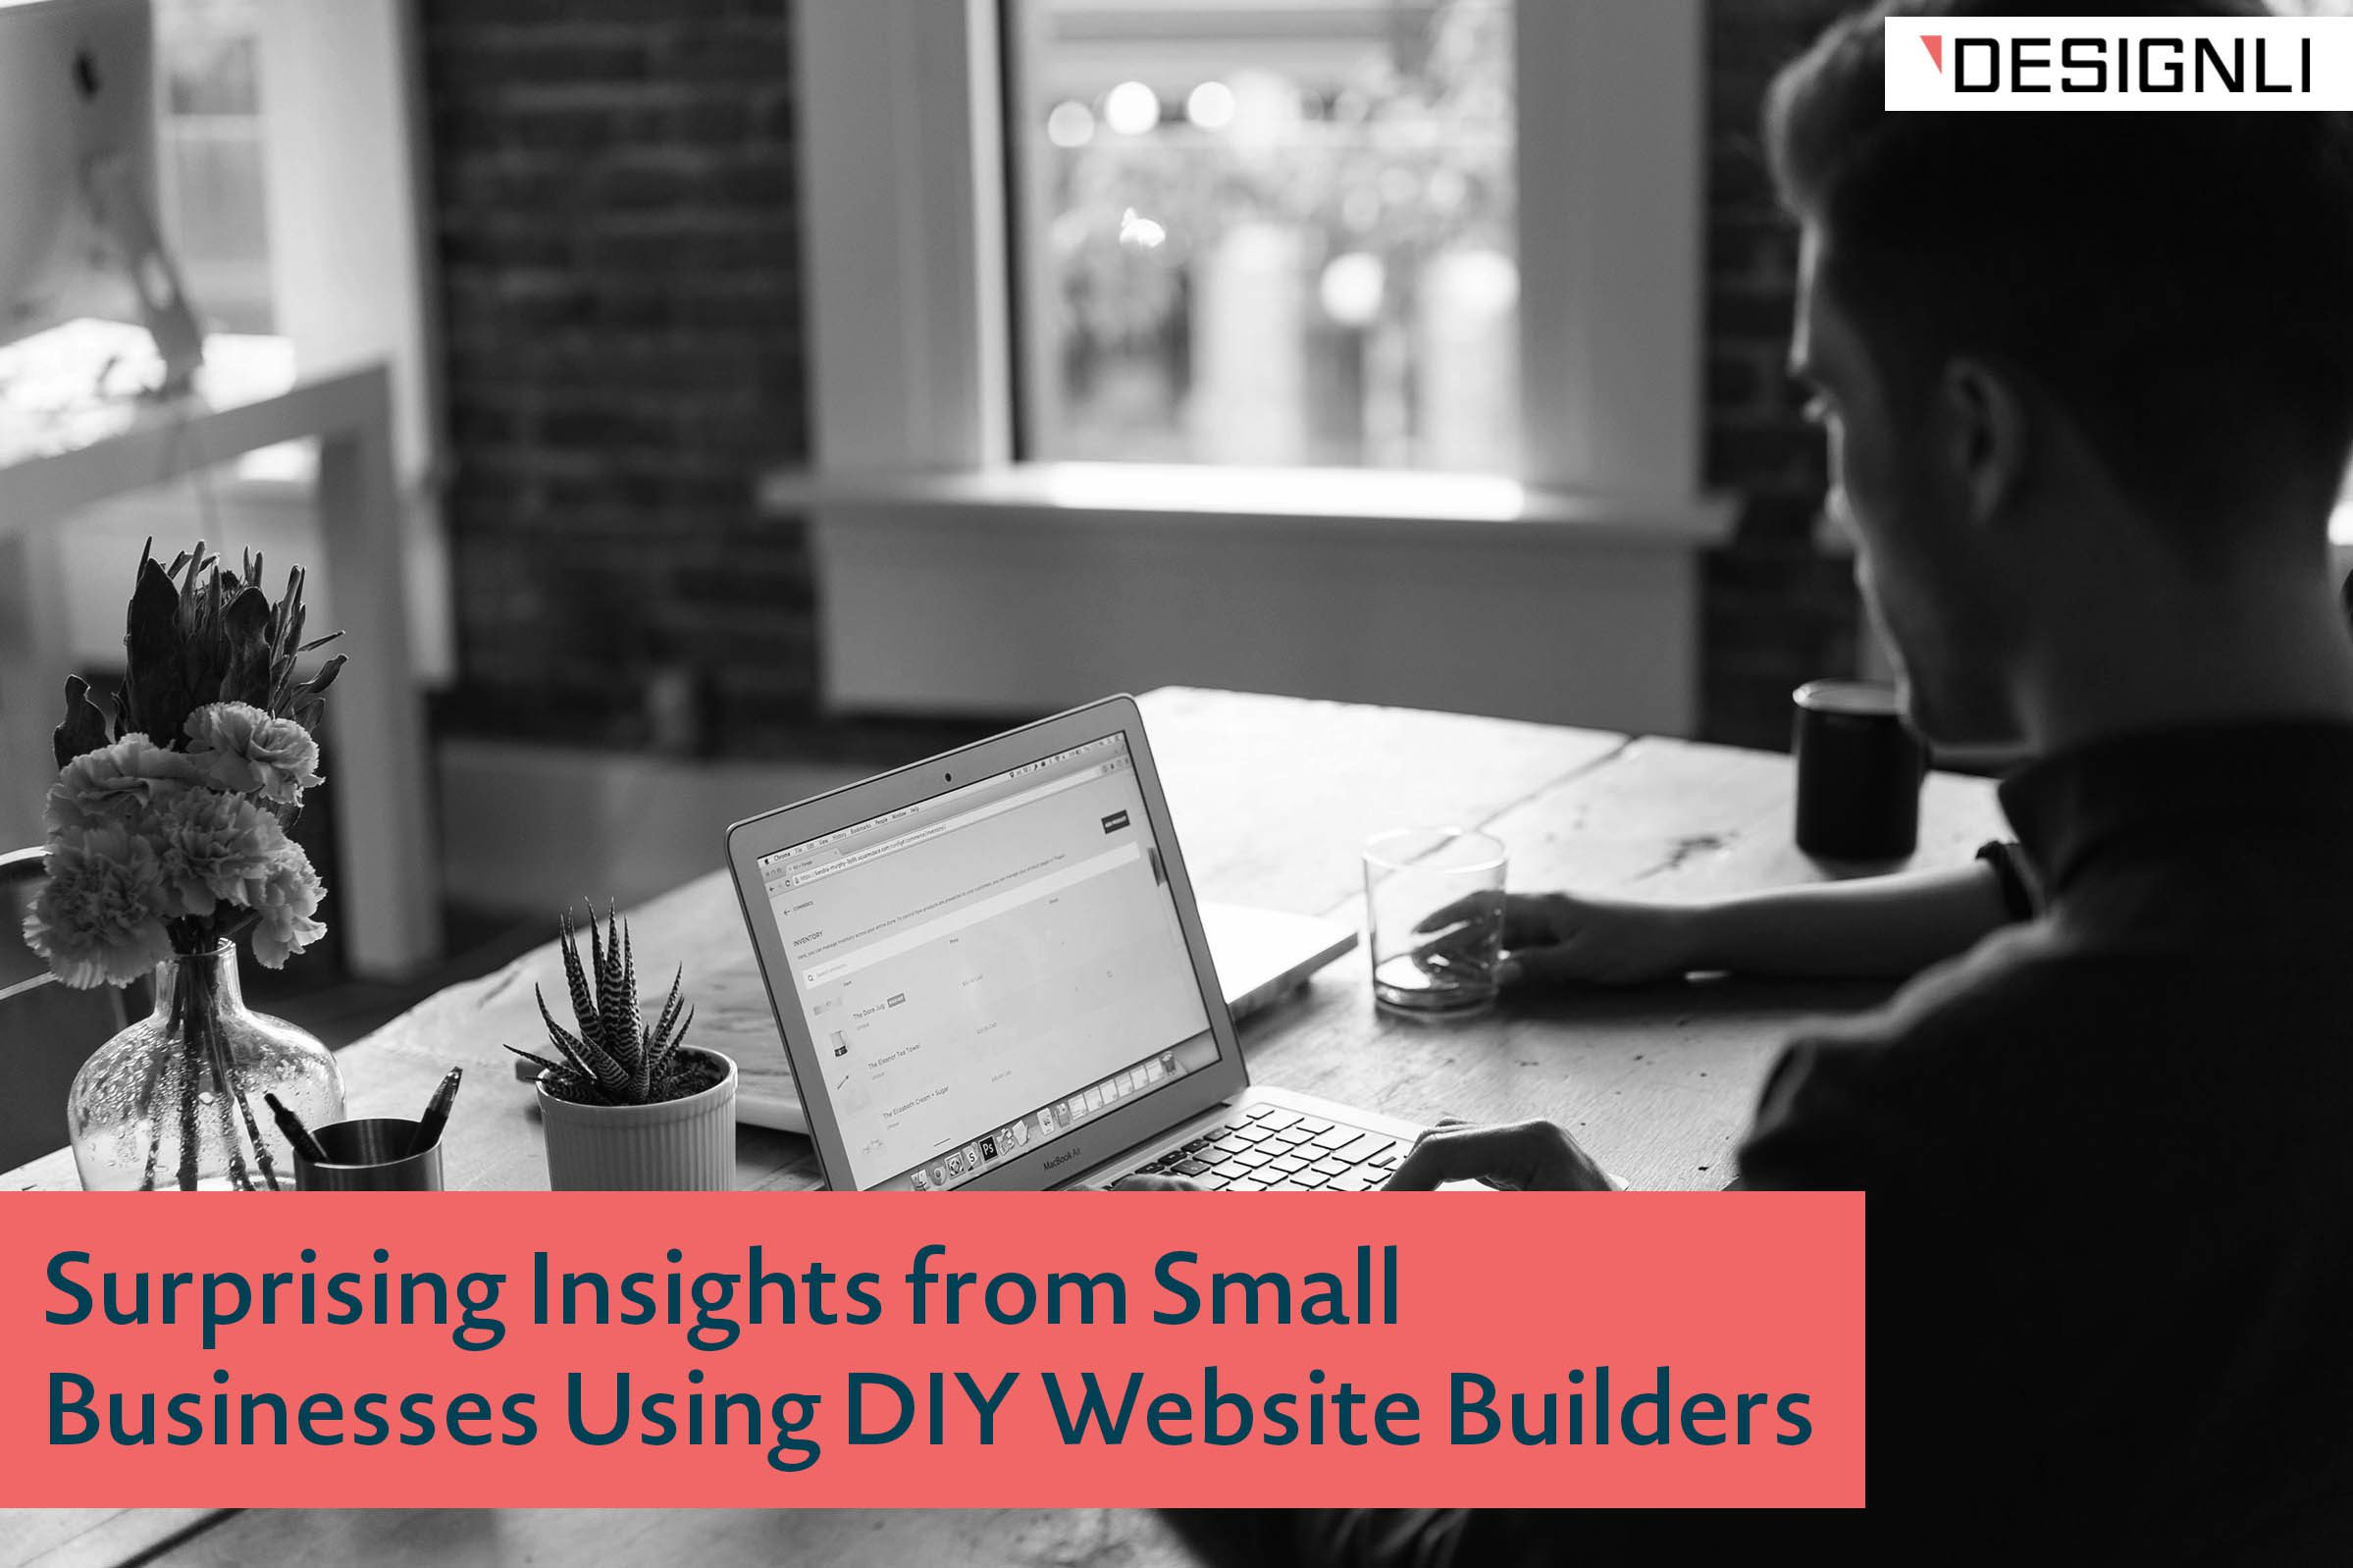 Surprising insights from small businesses using diy website builders surprising insights from small businesses using diy website builders designli blog solutioingenieria Images